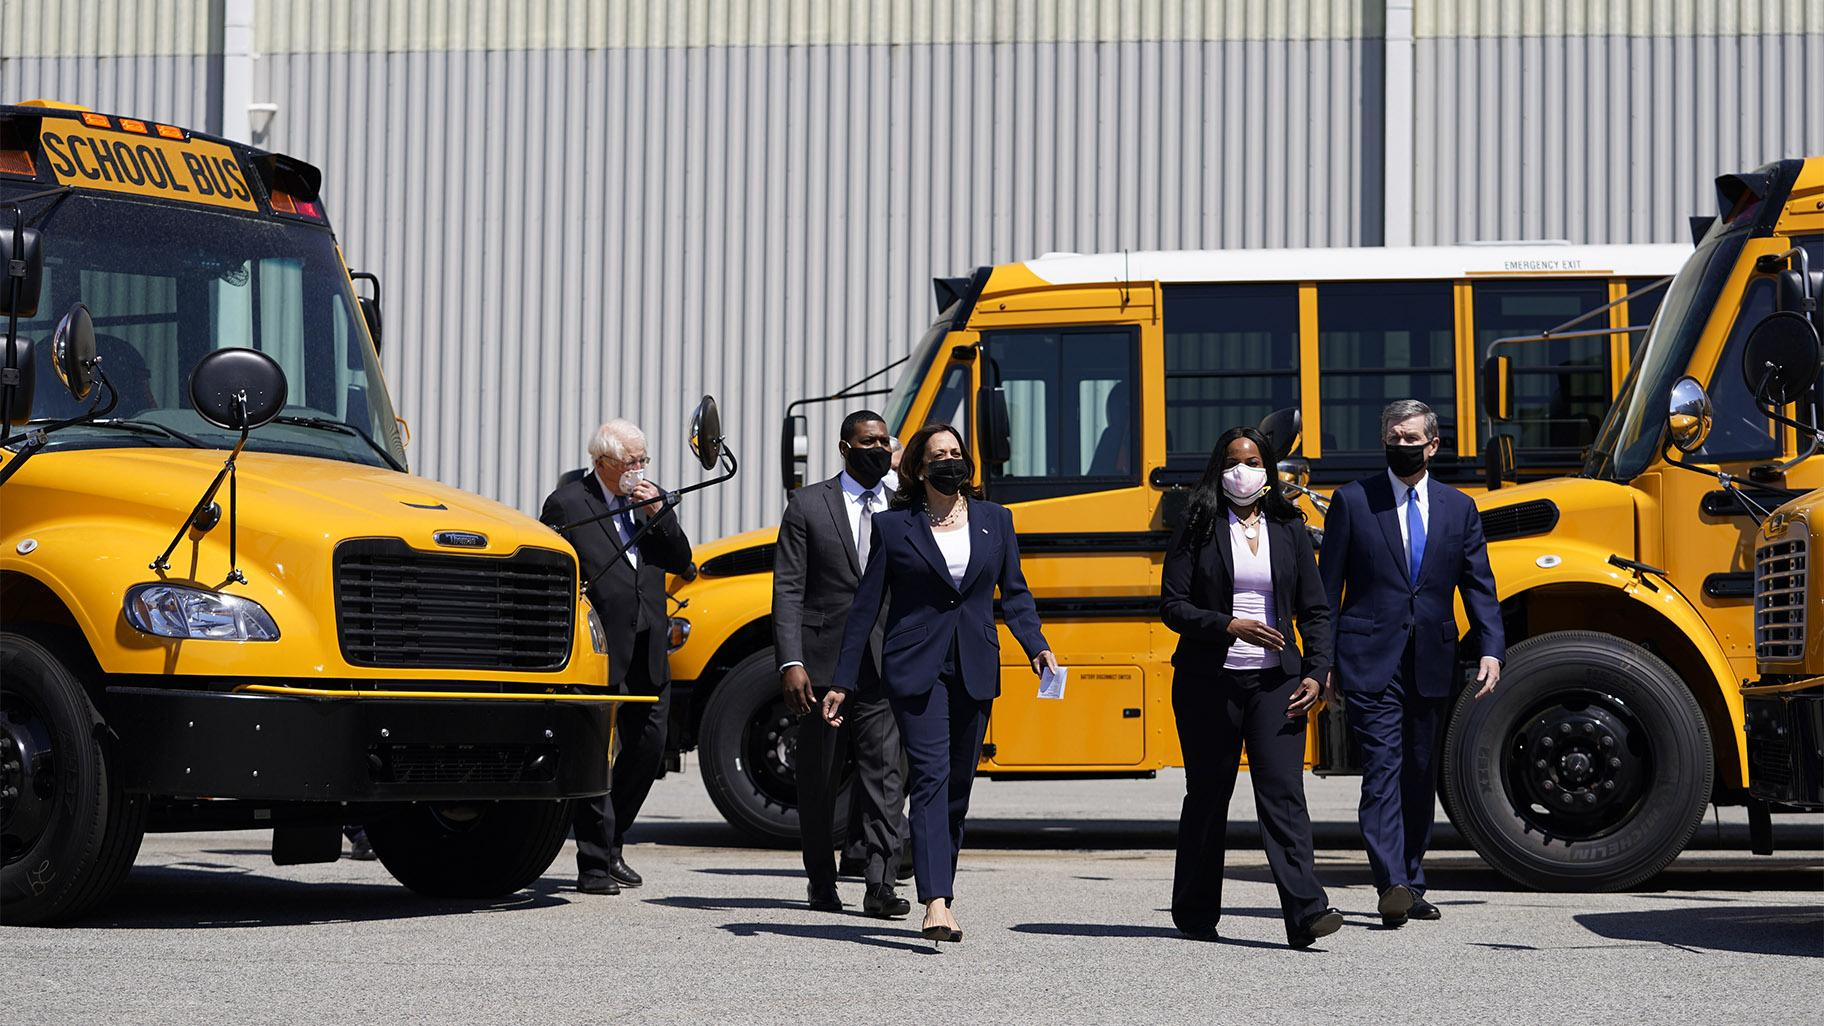 Vice President Kamala Harris tours Thomas Built Buses, Monday, April 19, 2021, in High Point, N.C. Harris is joined by EPA Administrator Michael Regan, North Carolina Gov. Roy Cooper, Leslie Kilgore Vice President of Engineering, Rep. David Price, D-NC. (AP Photo / Carolyn Kaster)